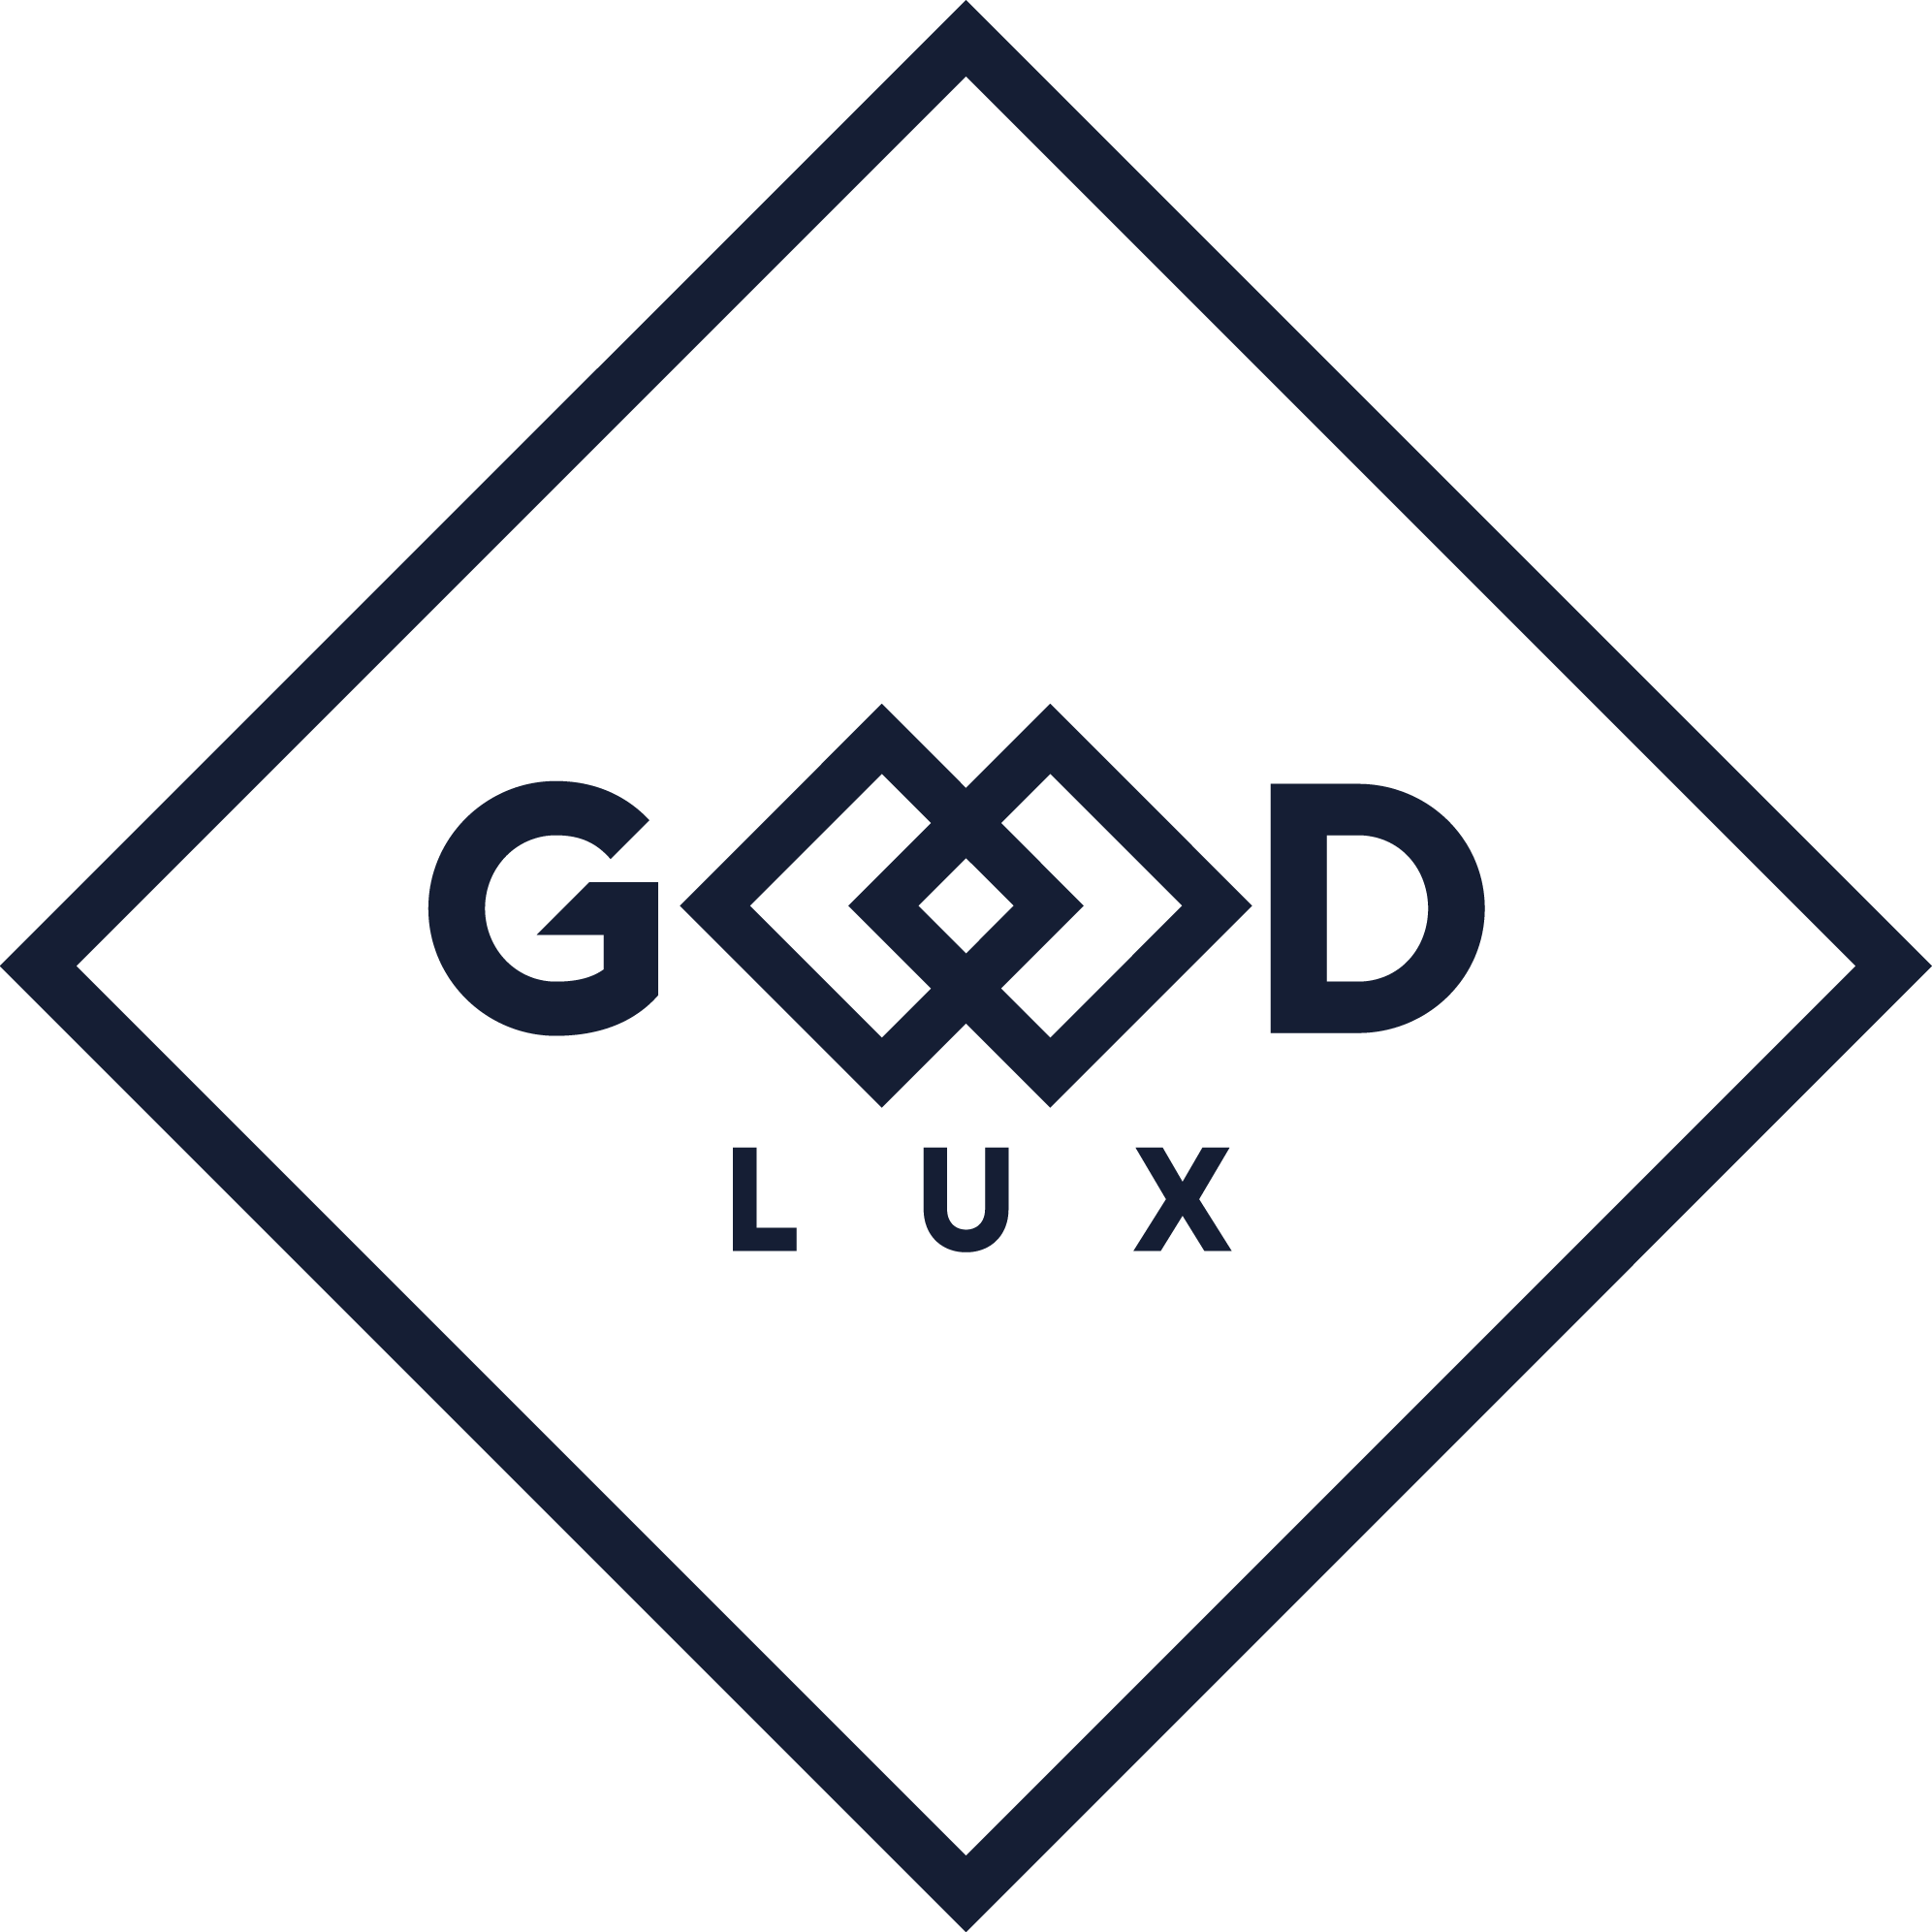 GOOD LUX AGENCY